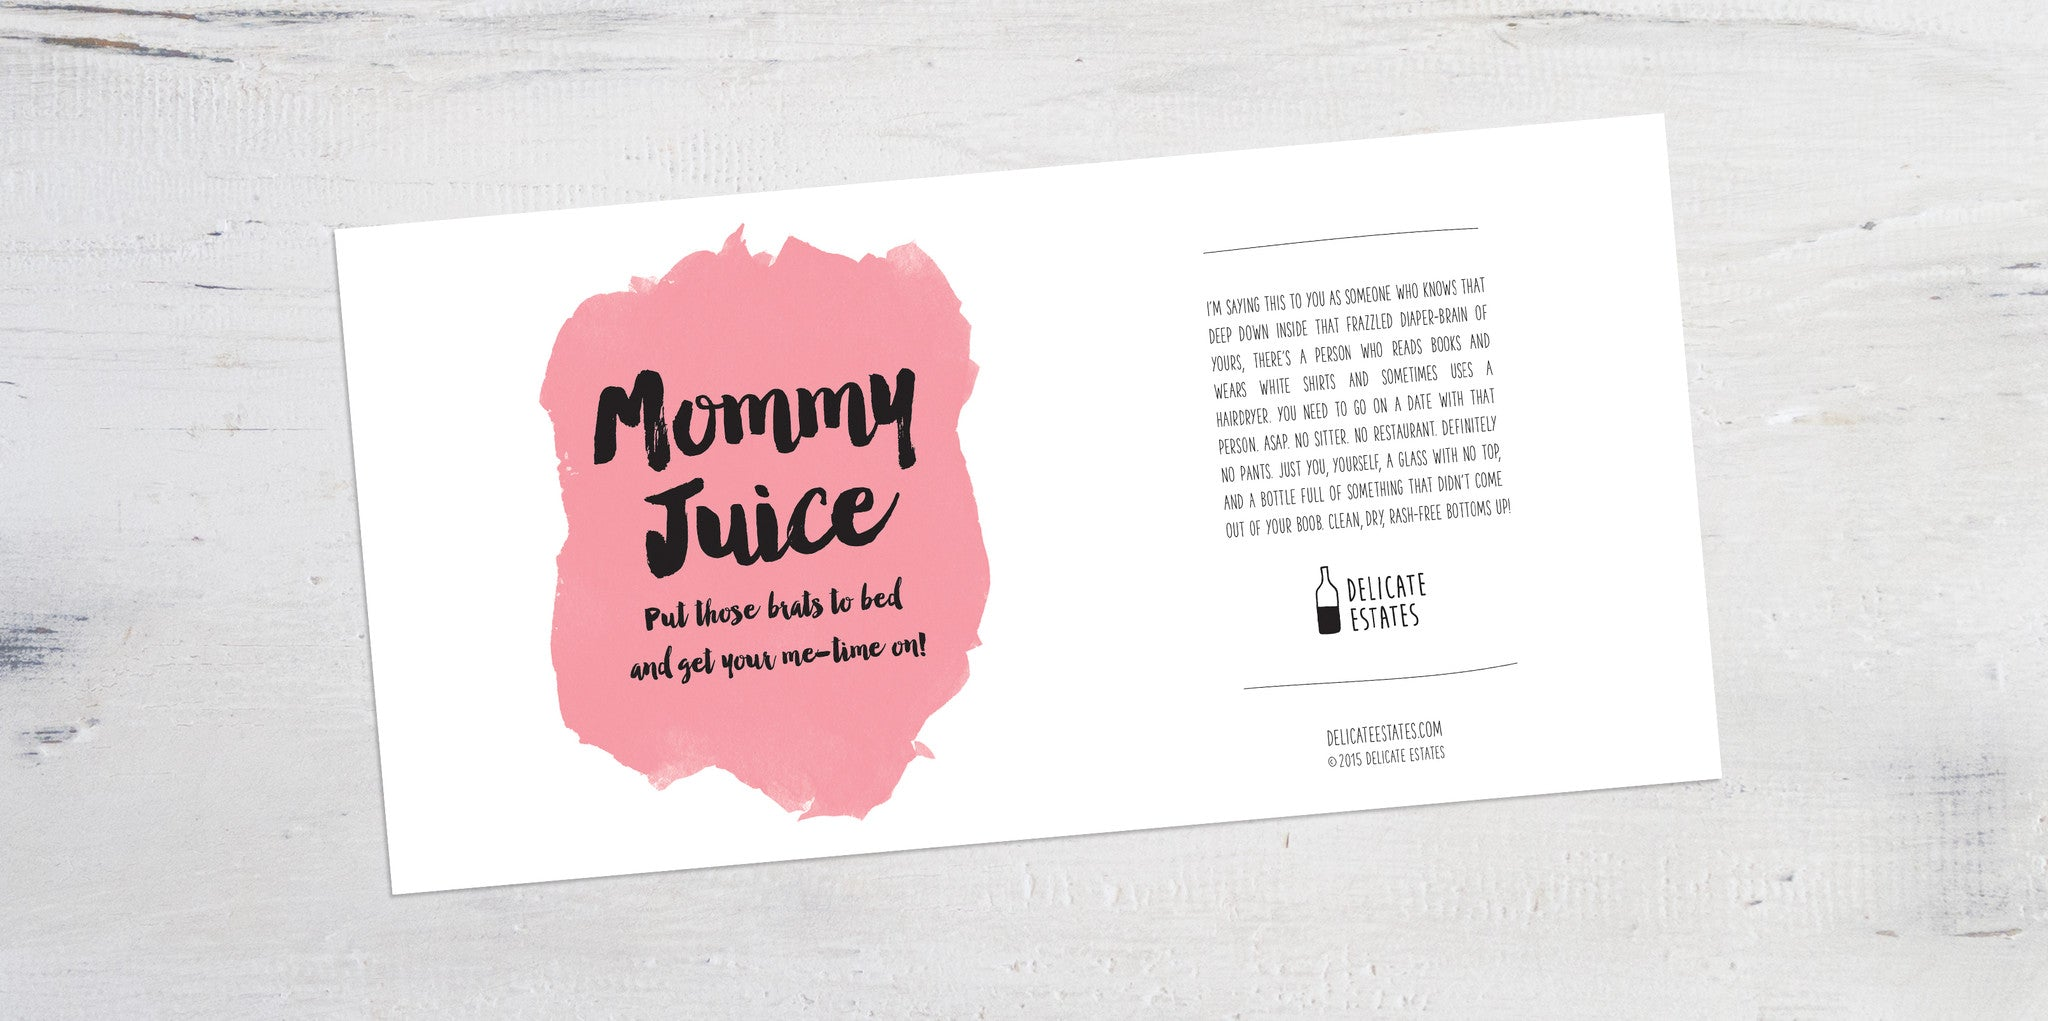 Mommy Juice wine label greeting card delicate estates breastfeeding funny sarcastic silly friend